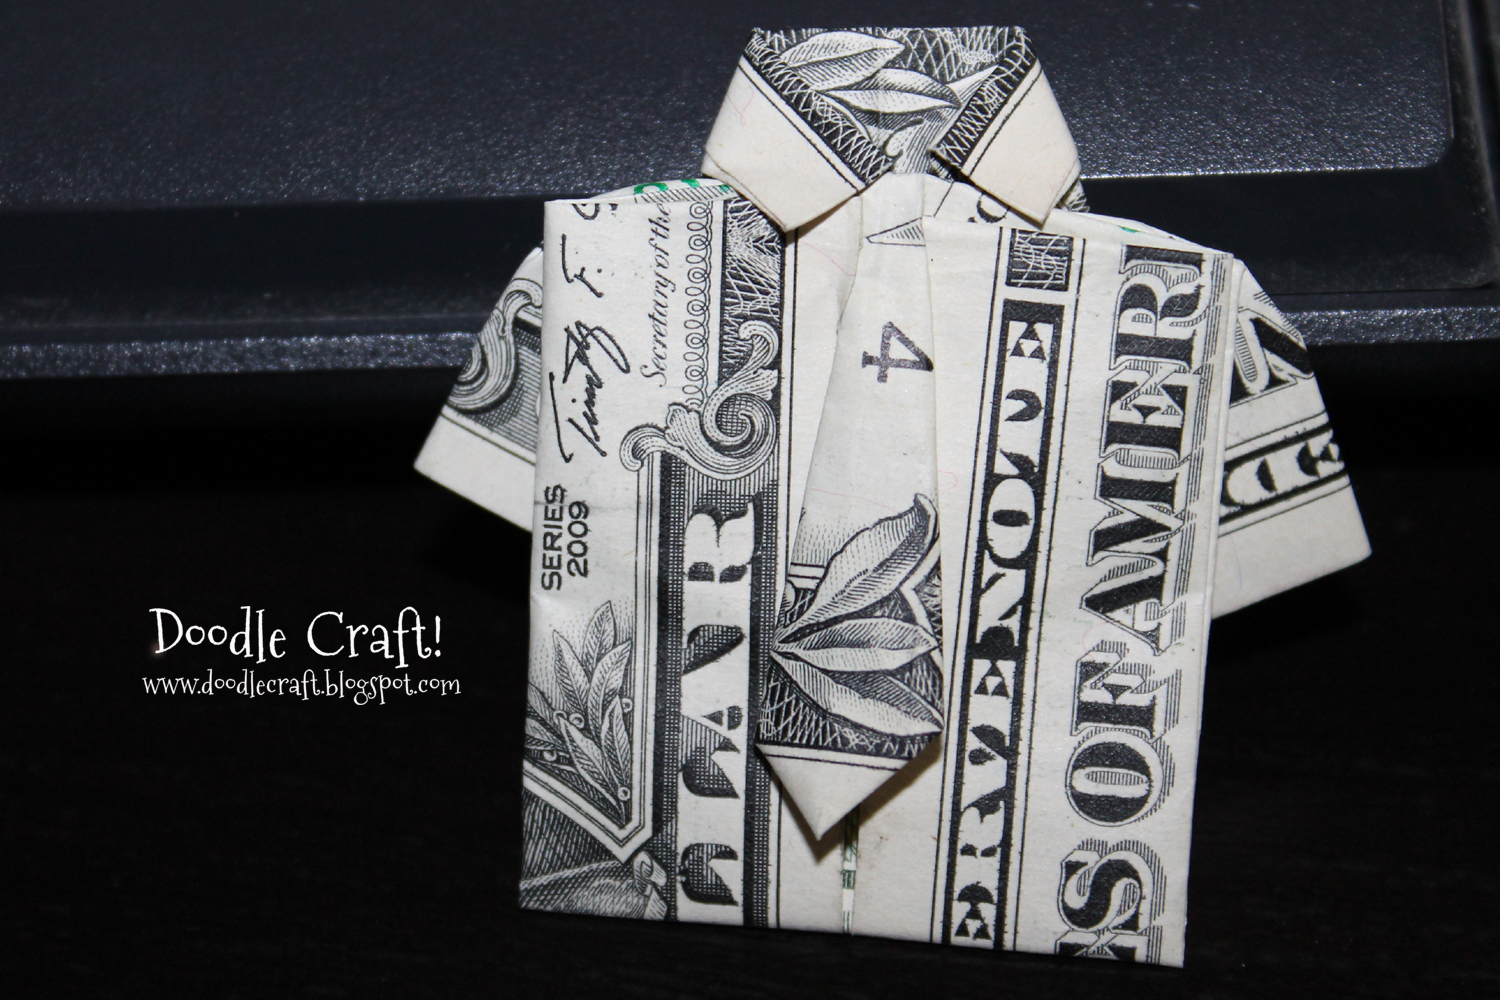 Doodlecraft: Origami Money folding: Shirt and Tie! - photo#41